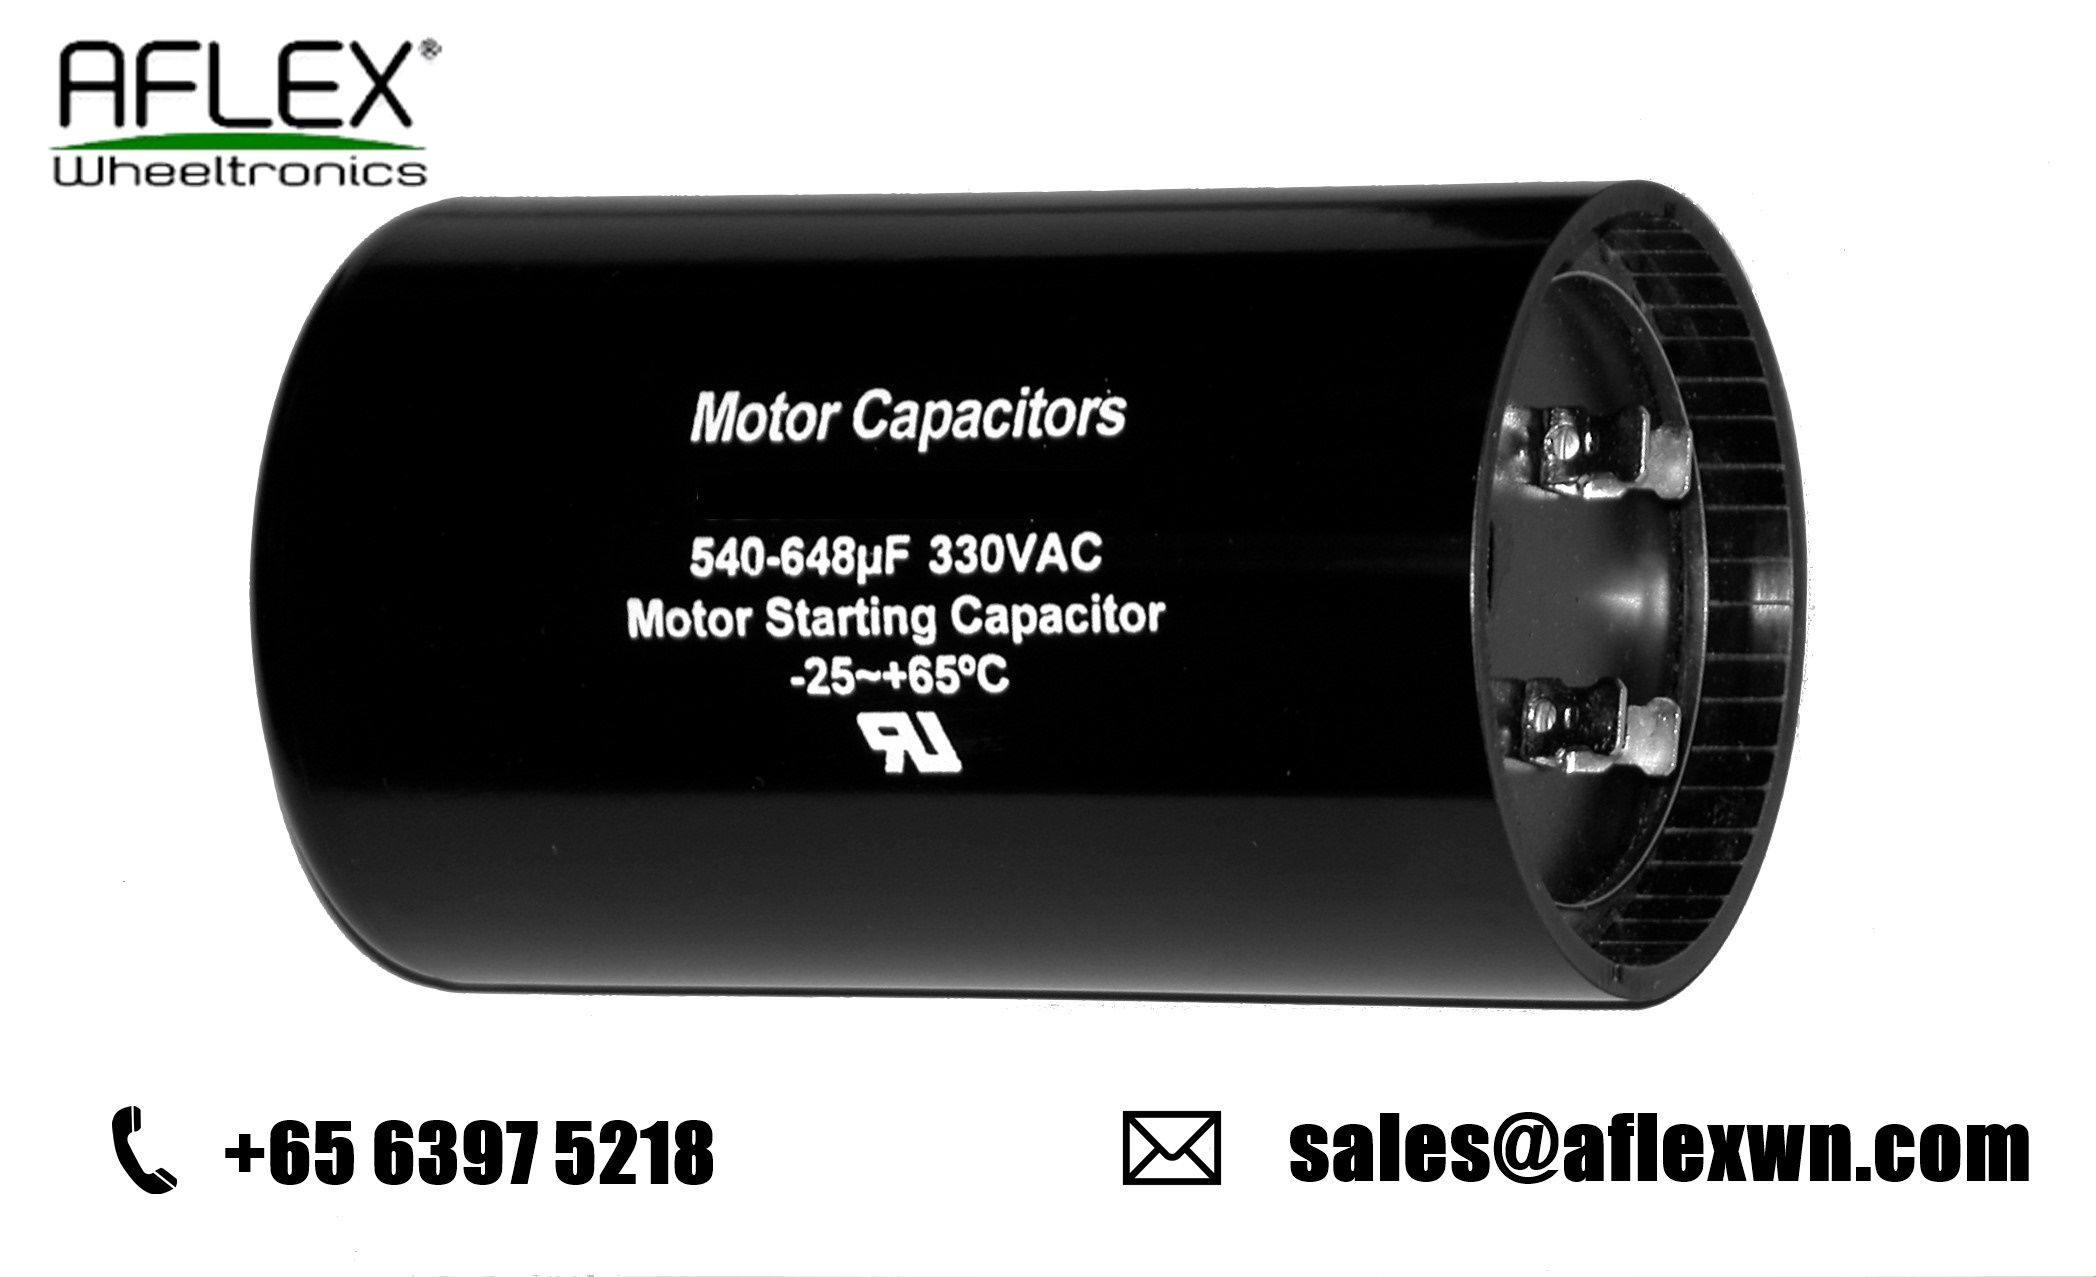 Motor Capacitor Capacitors Electronics Components Multimeter